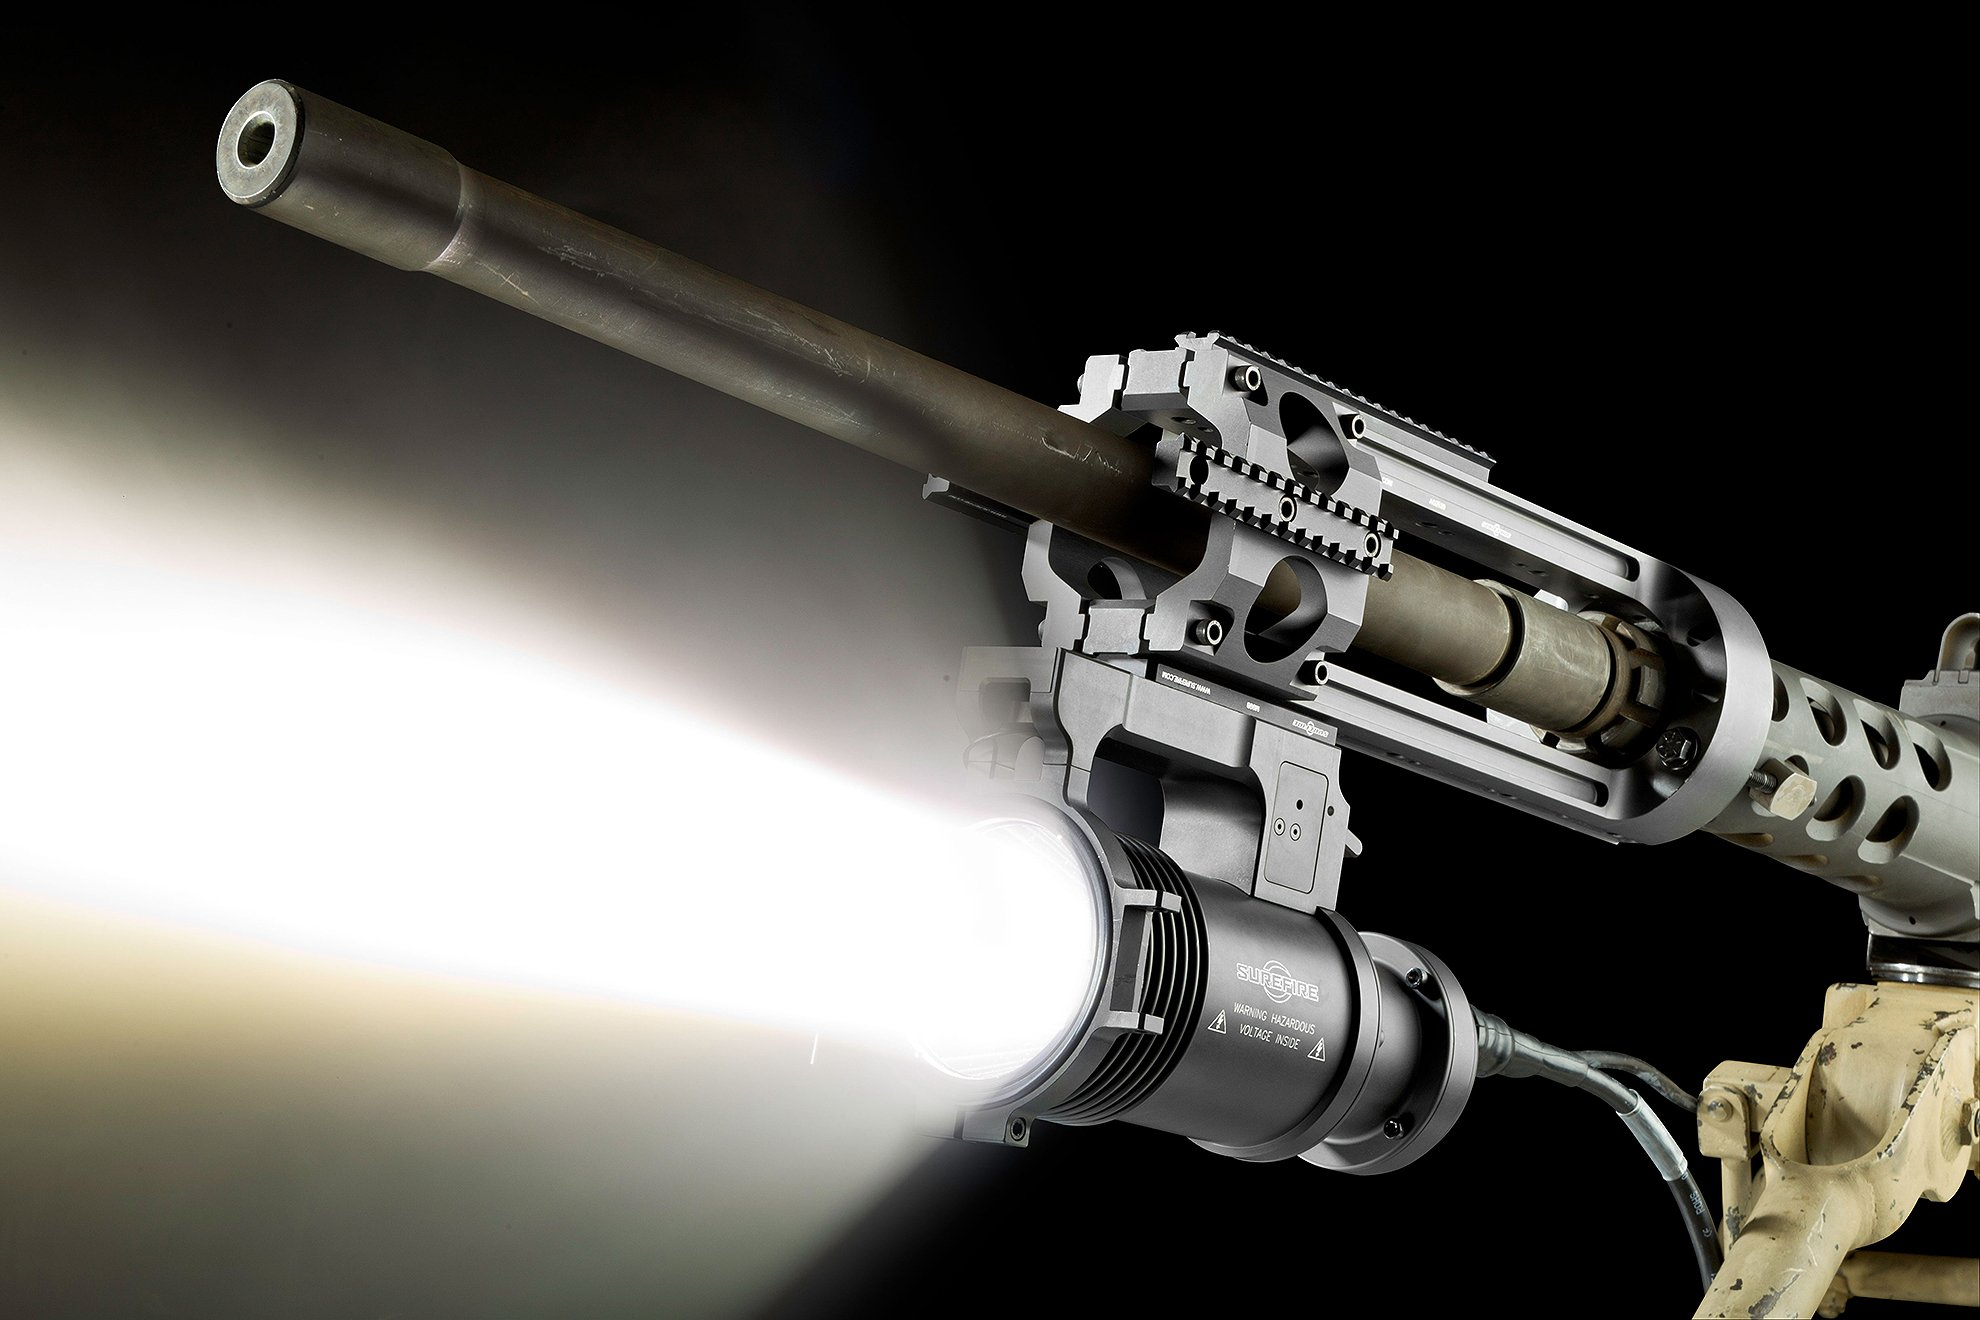 SureFire Hellfighter 4 heavy gun WeaponLight on .50 caliber machine gun